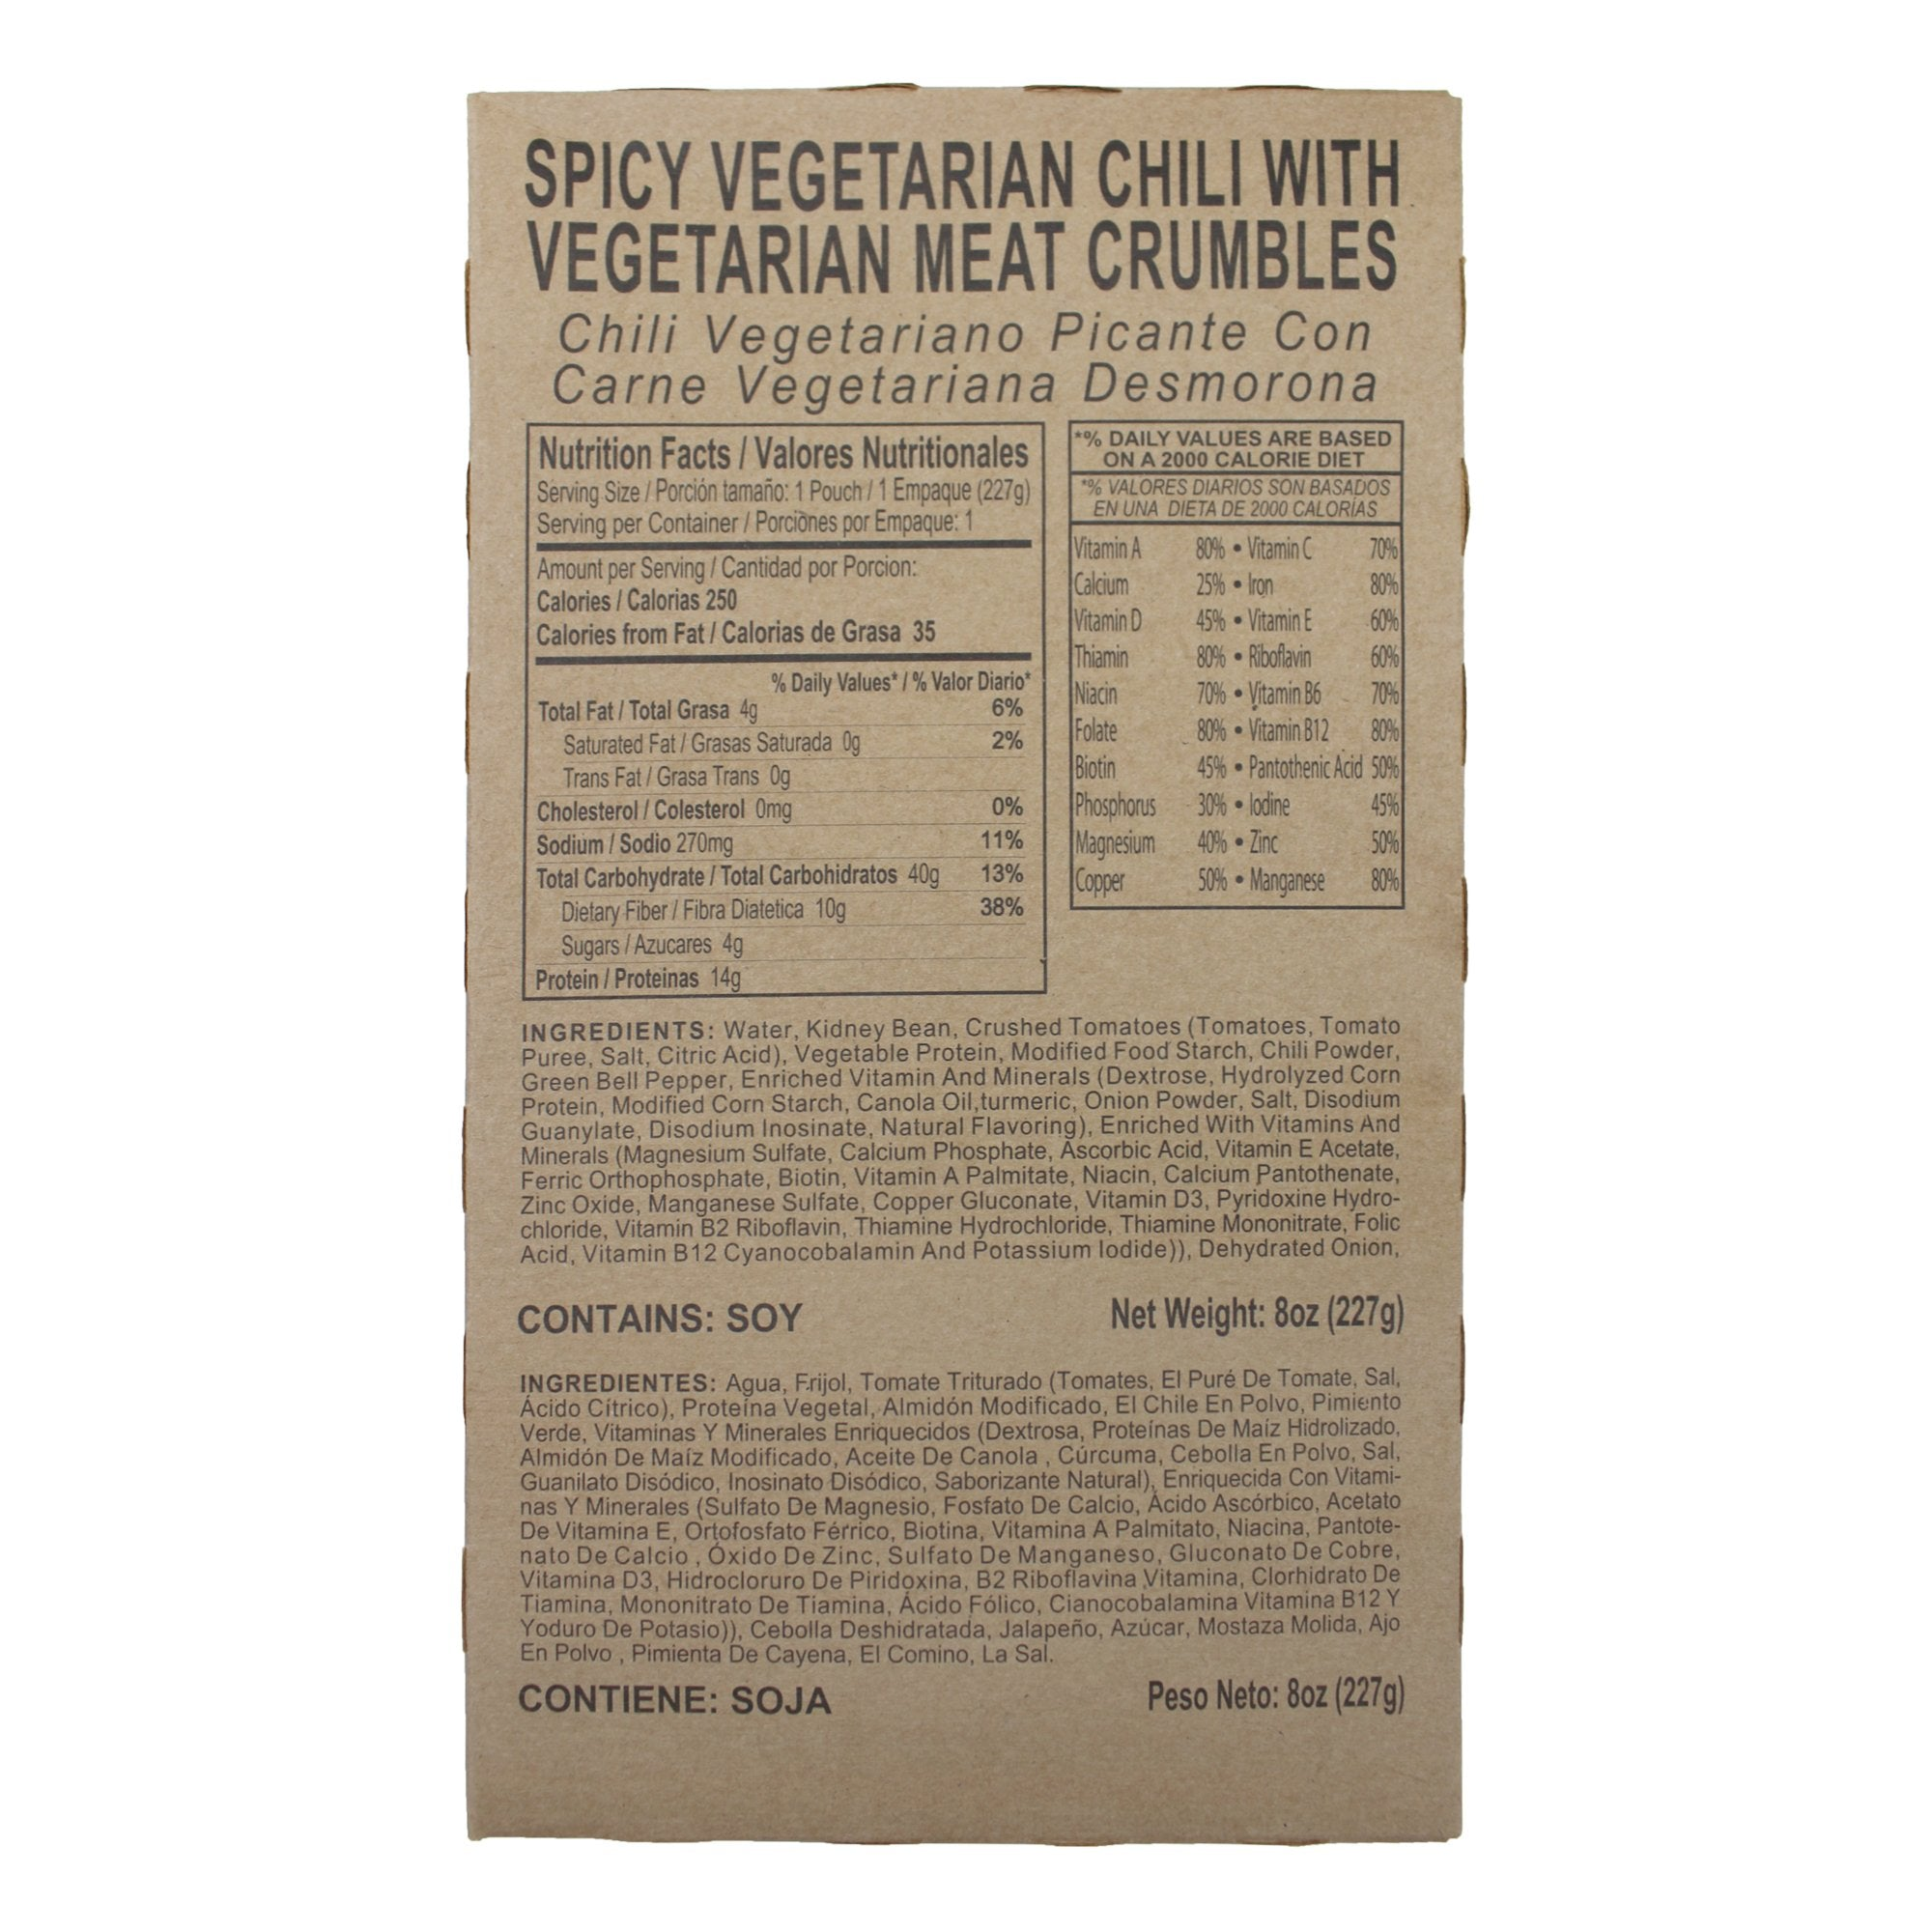 Spicy Vegetarian Chili with Vegetarian Meat Crumbles - MRE Star